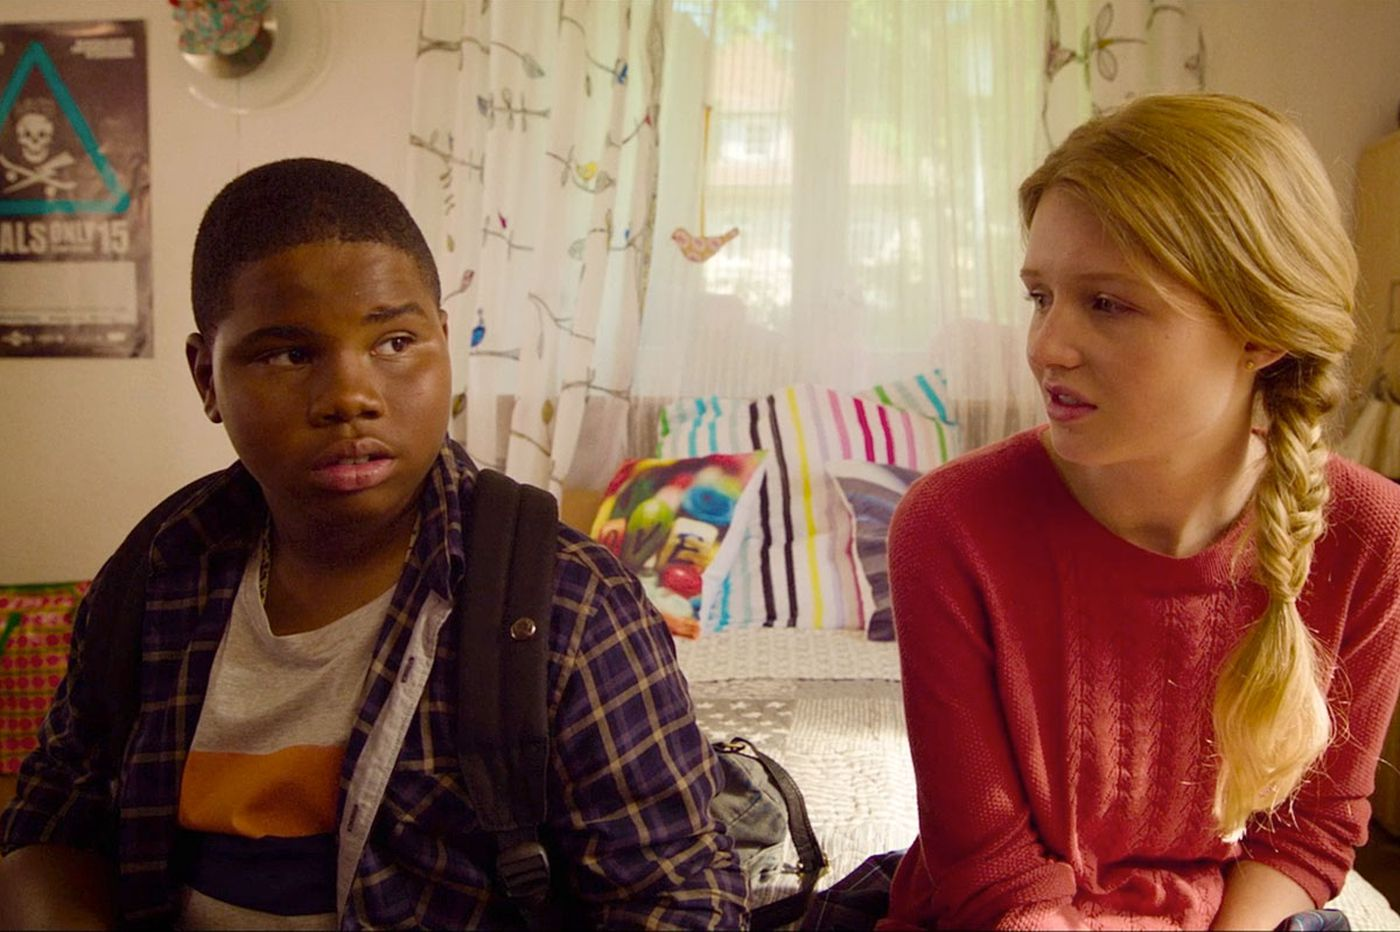 'Morris From America': Craig Robinson and newcomer in must-see strangers-in-a-strange-land indie